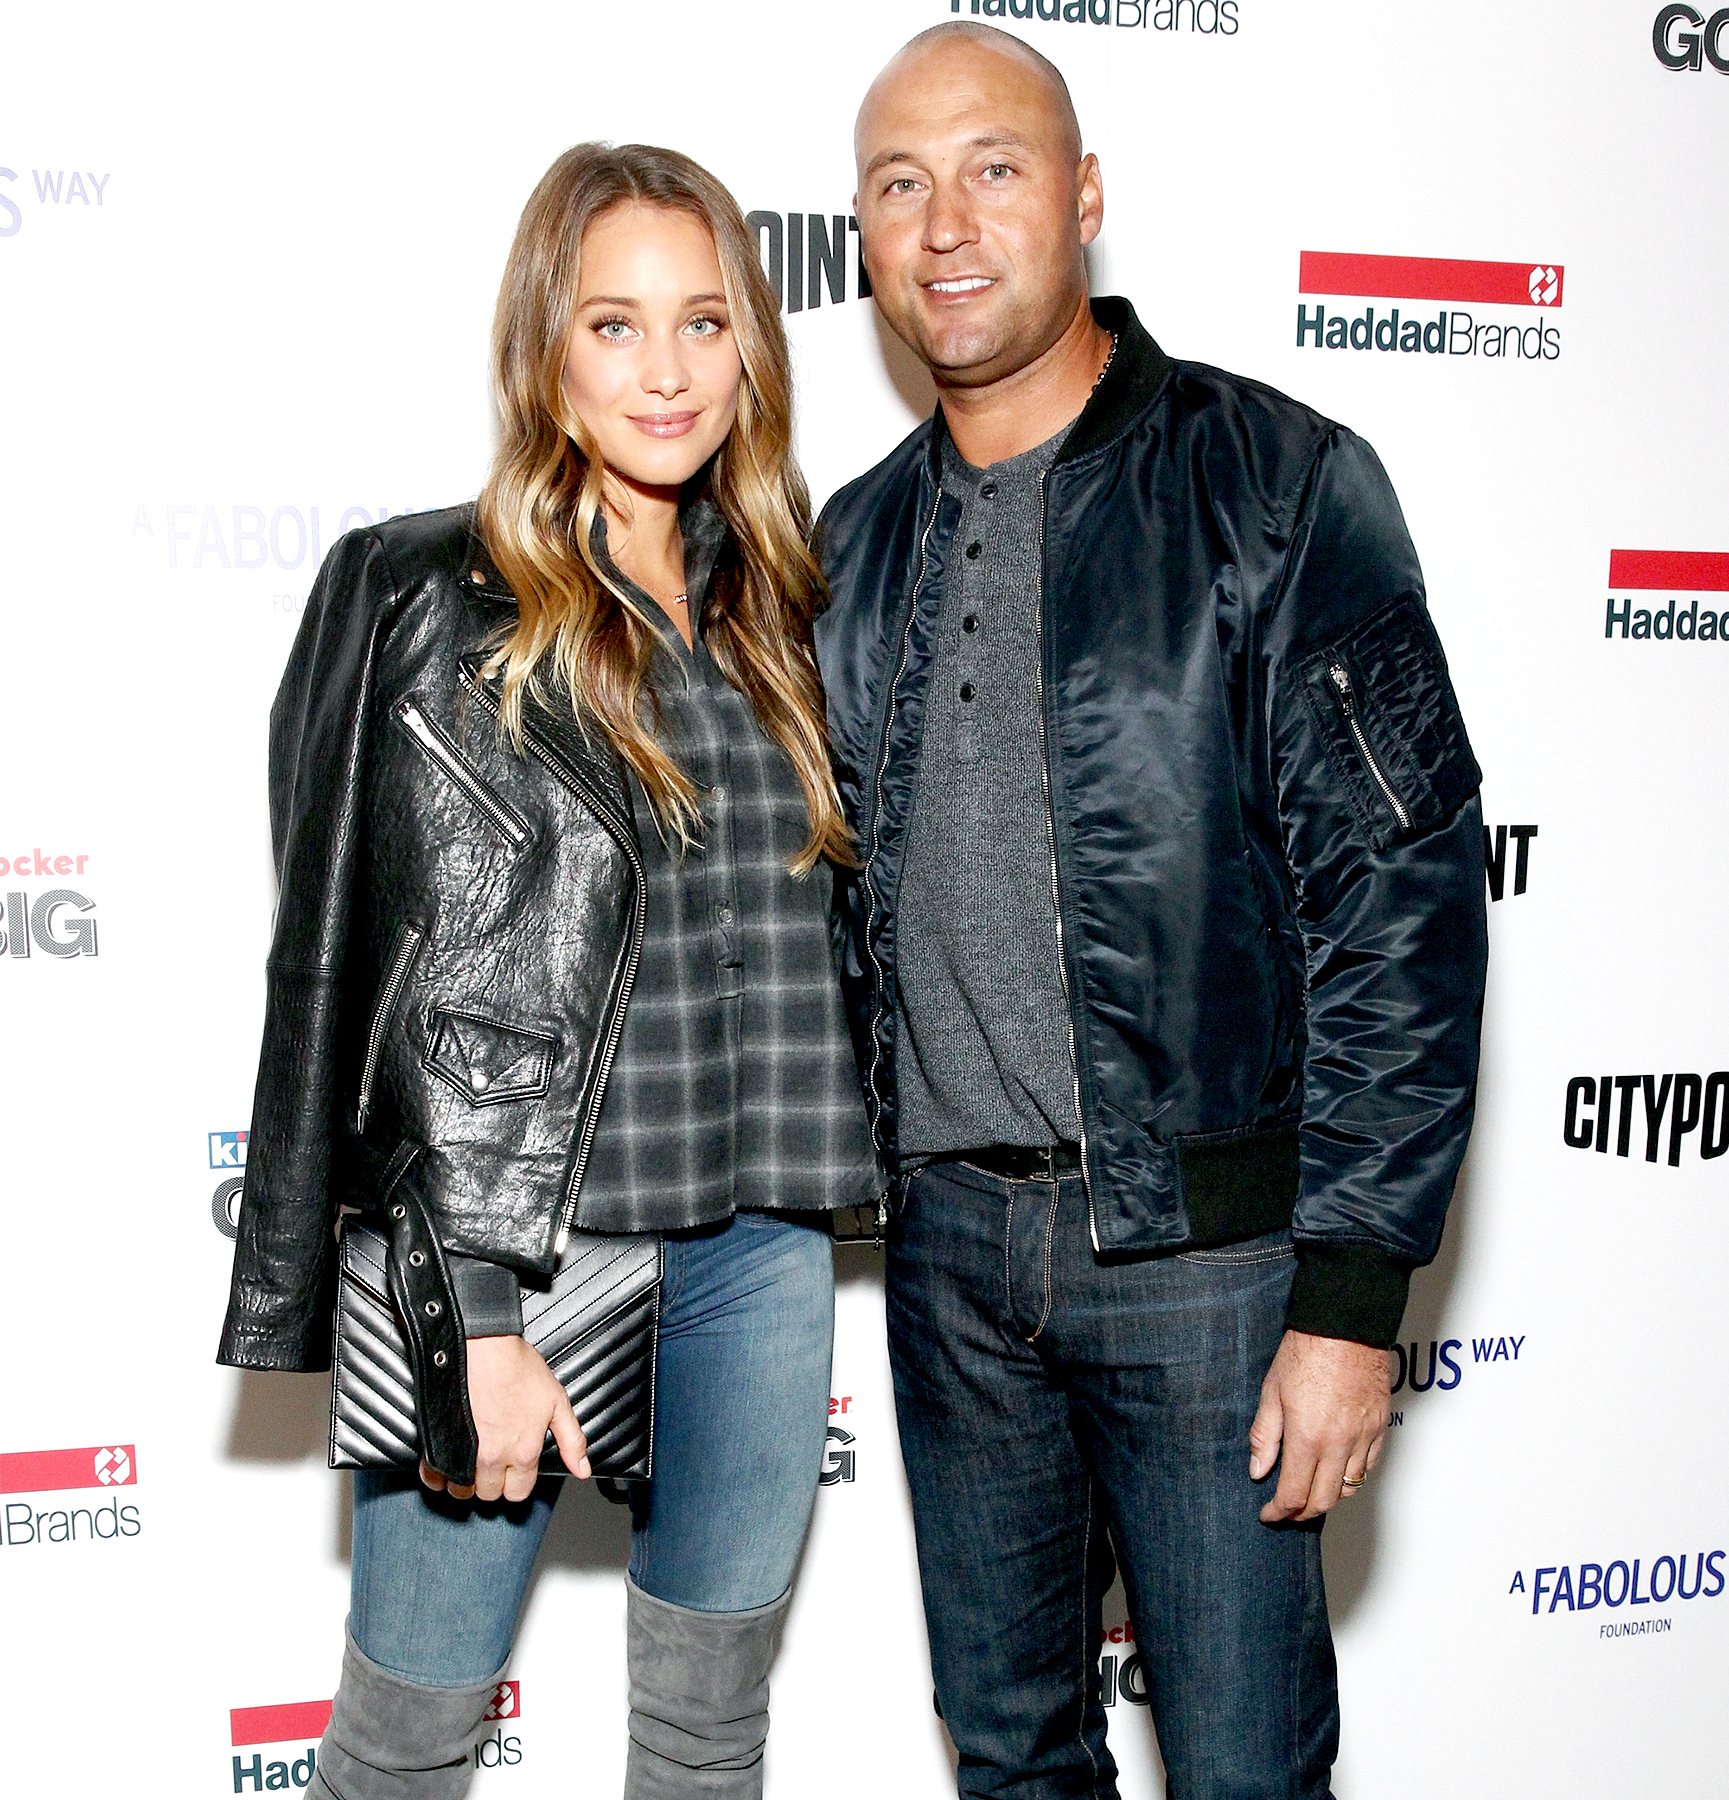 Hannah Davis and Derek Jeter attend BKLYN Rocks presented by City Point, Kids Foot Locker, and Haddad Brands at City Point on November 9, 2016 in Brooklyn City.